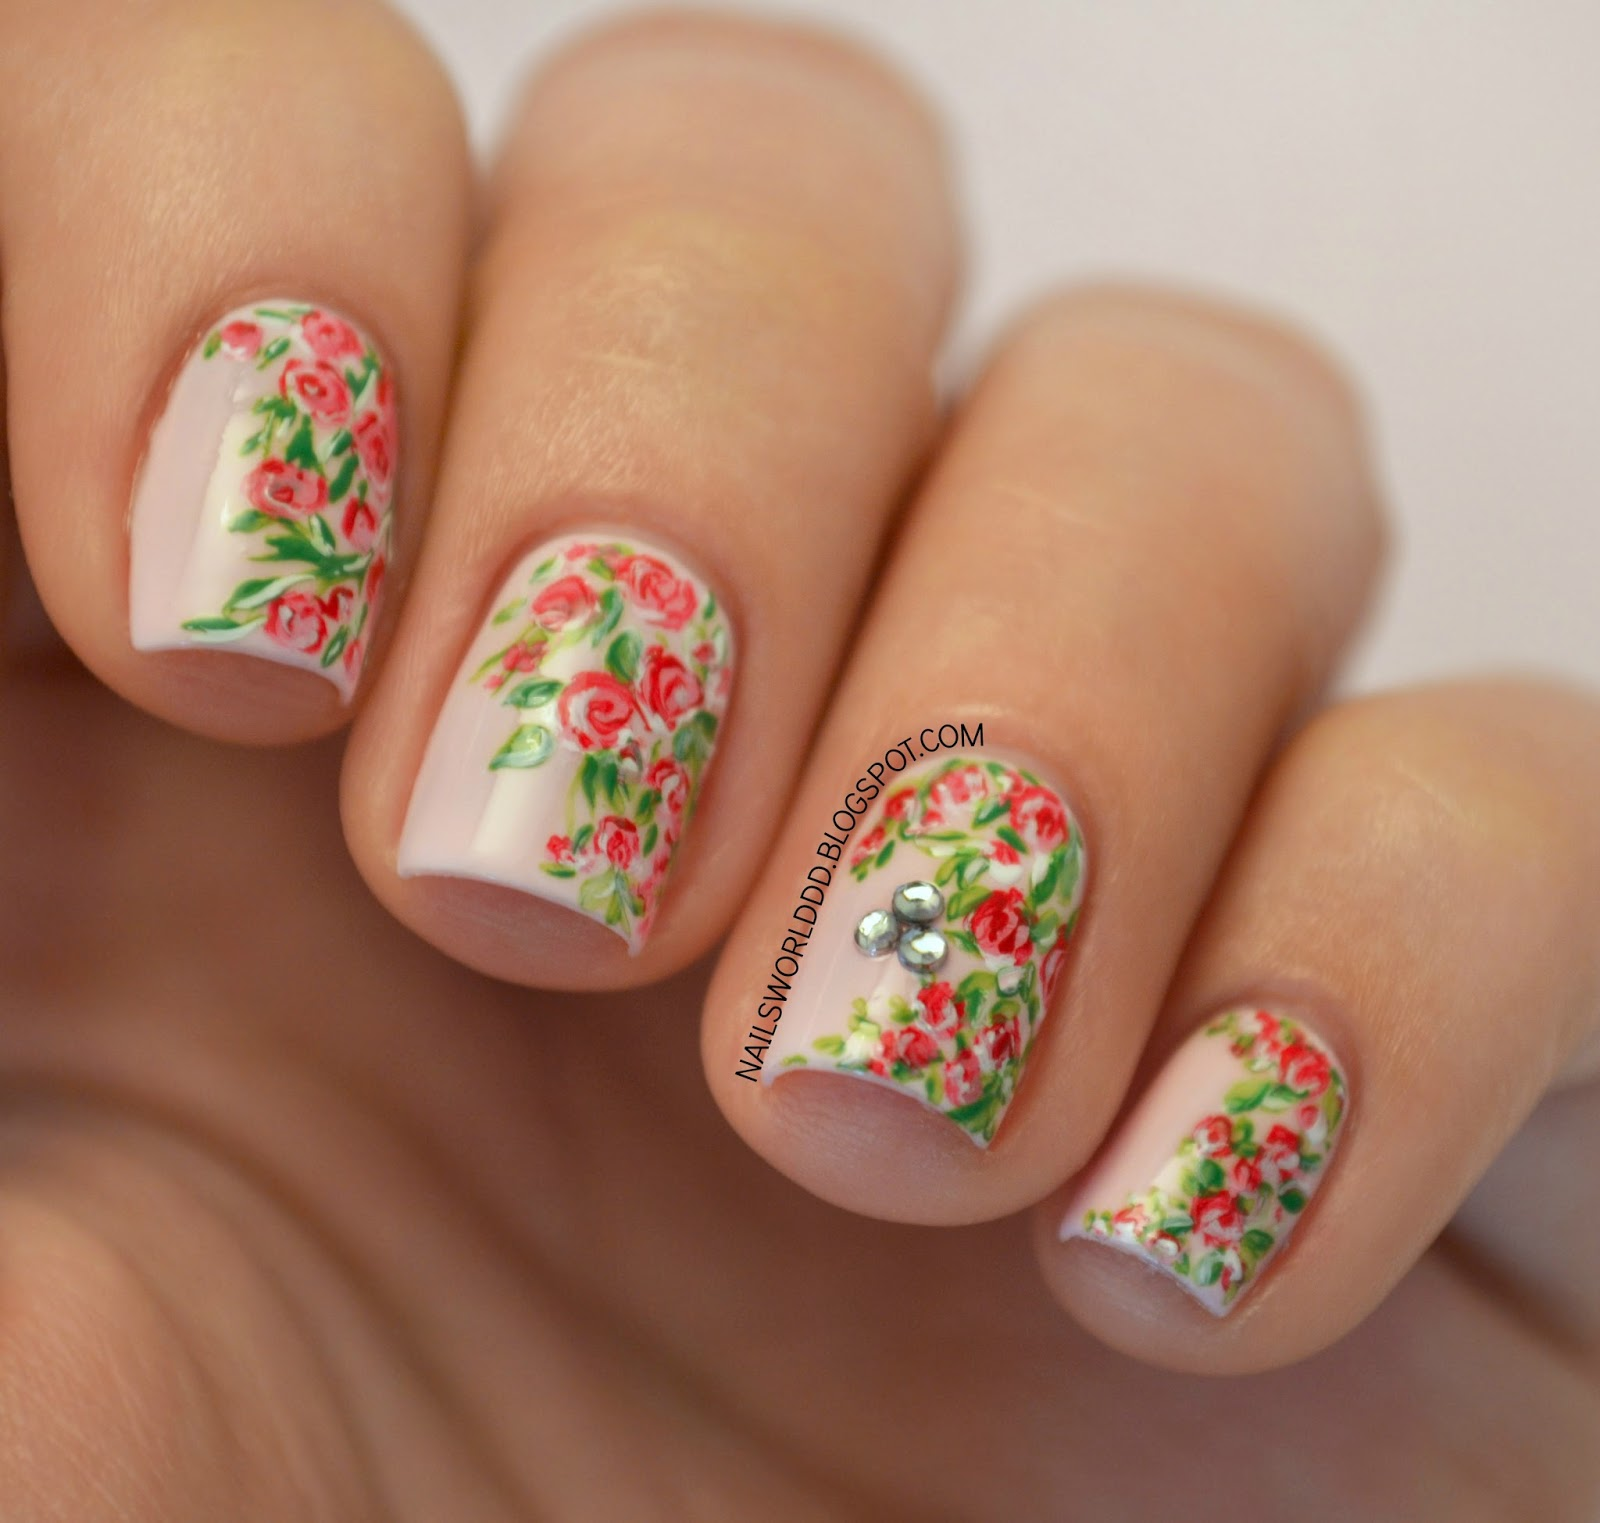 NAILS WORLD: VINTAGE FLORAL NAIL ART